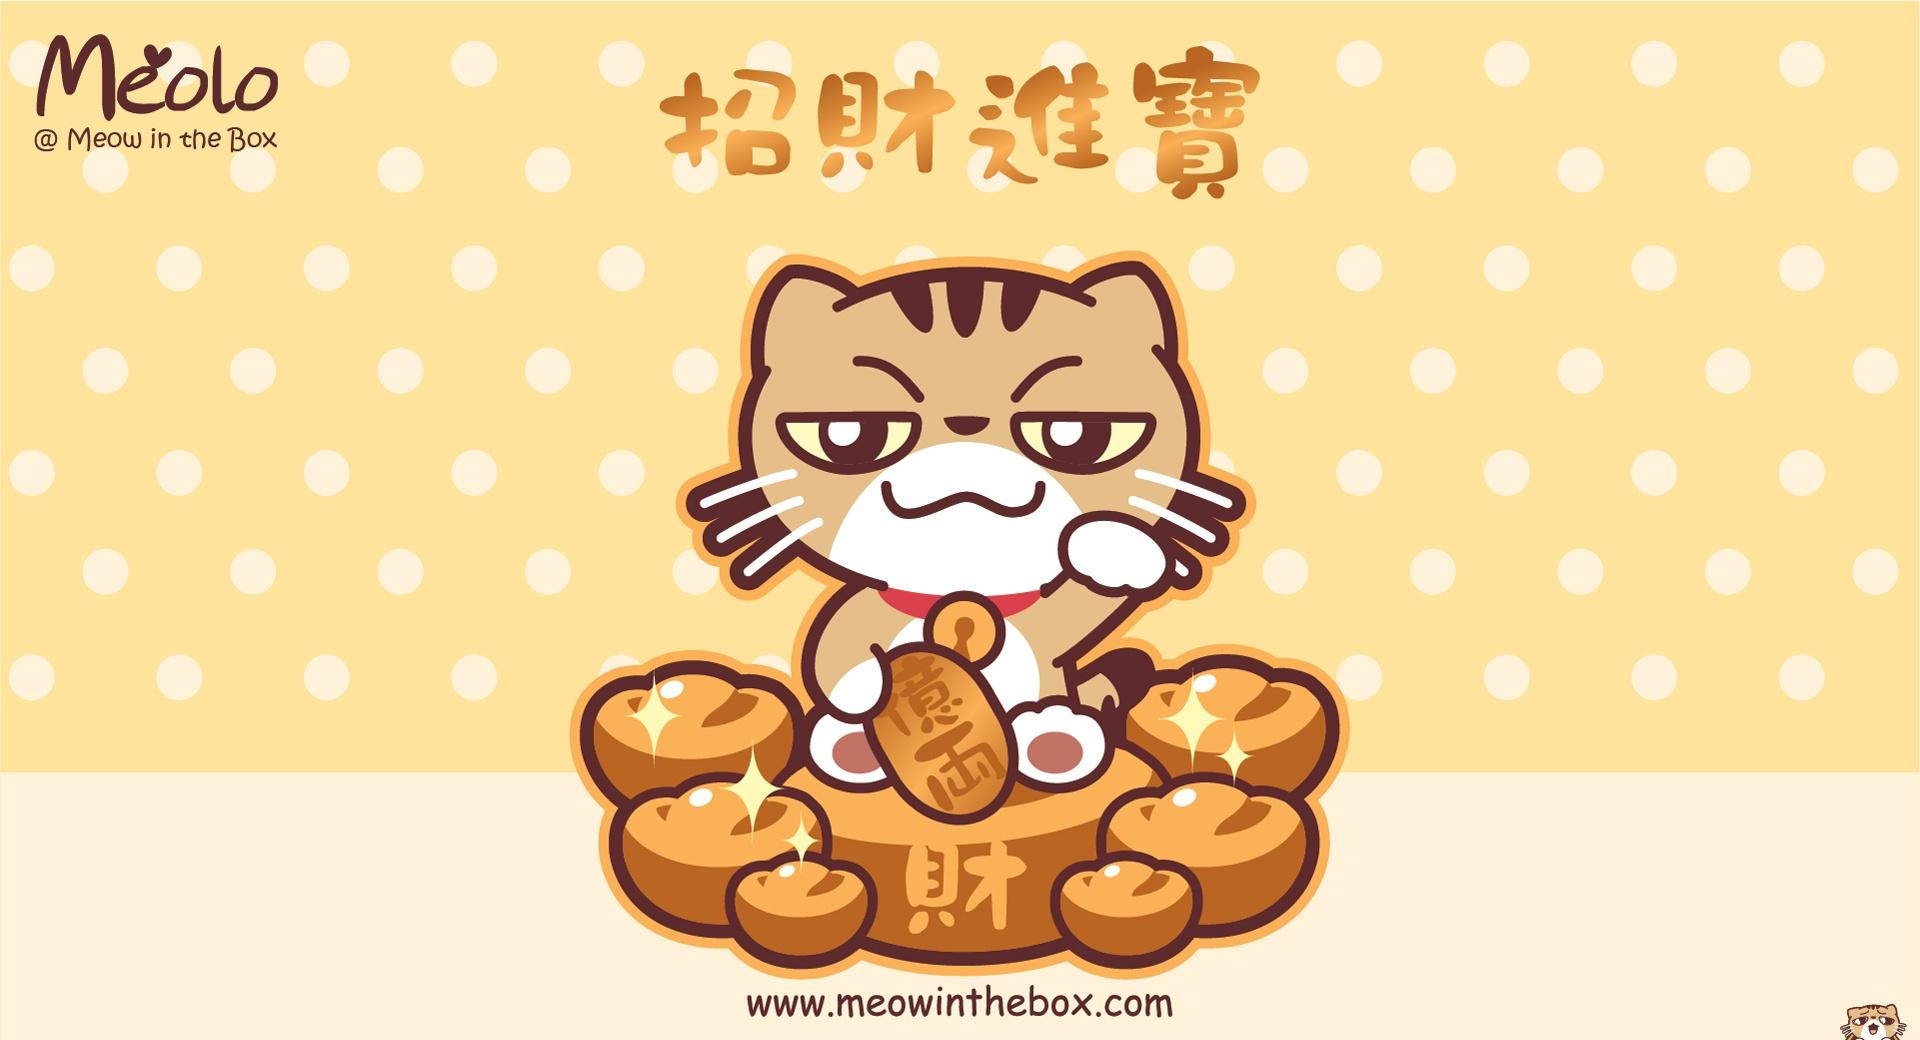 Meolo Chinese New Year - Meow in the Box wallpapers HD quality